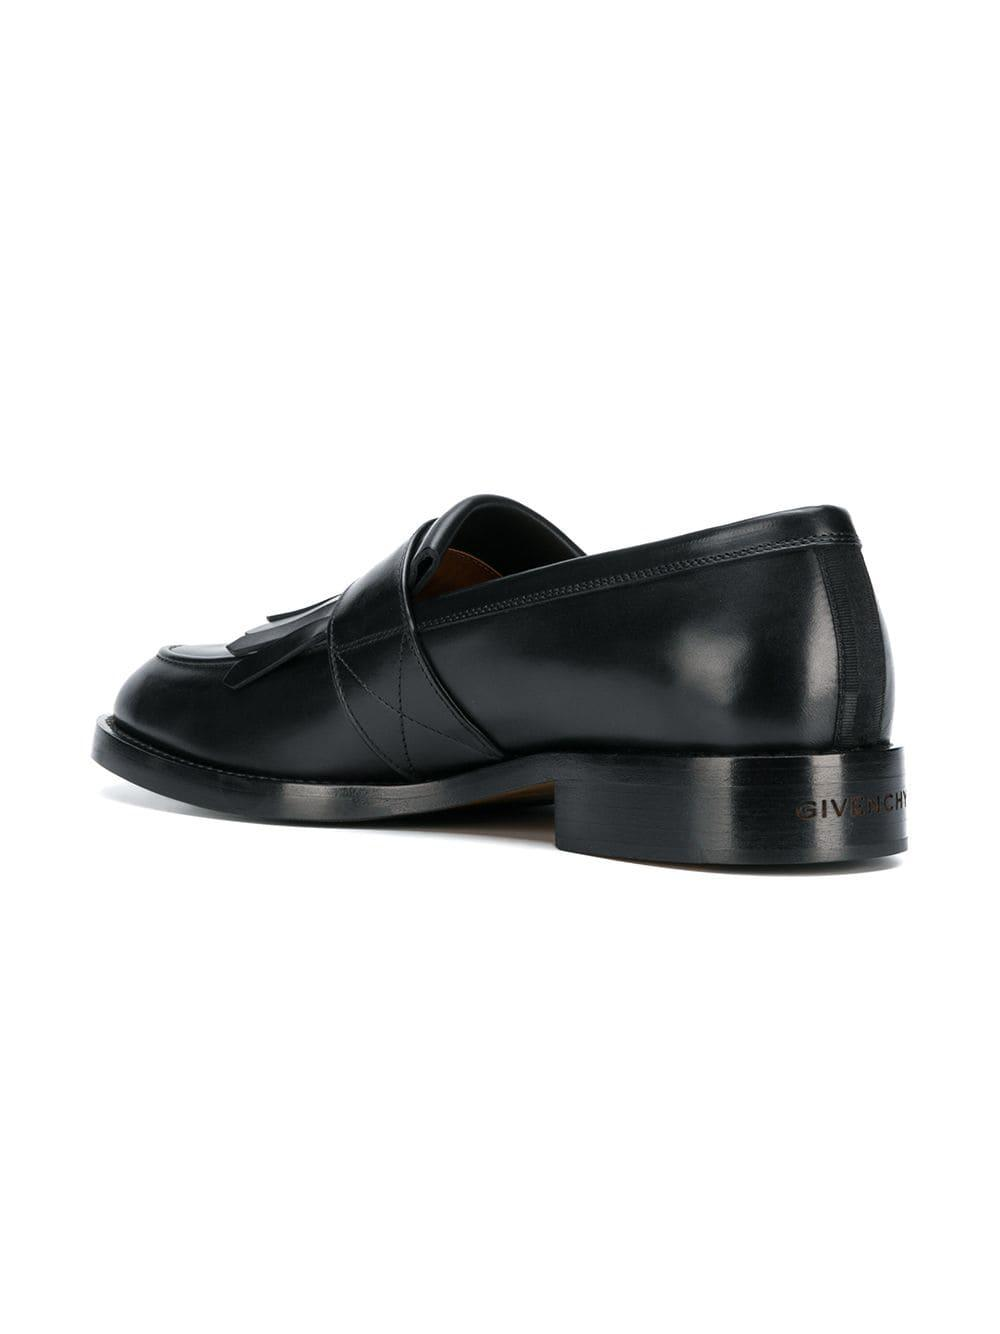 d5caad92788 Givenchy - Black Fringe Detail Loafers for Men - Lyst. View fullscreen